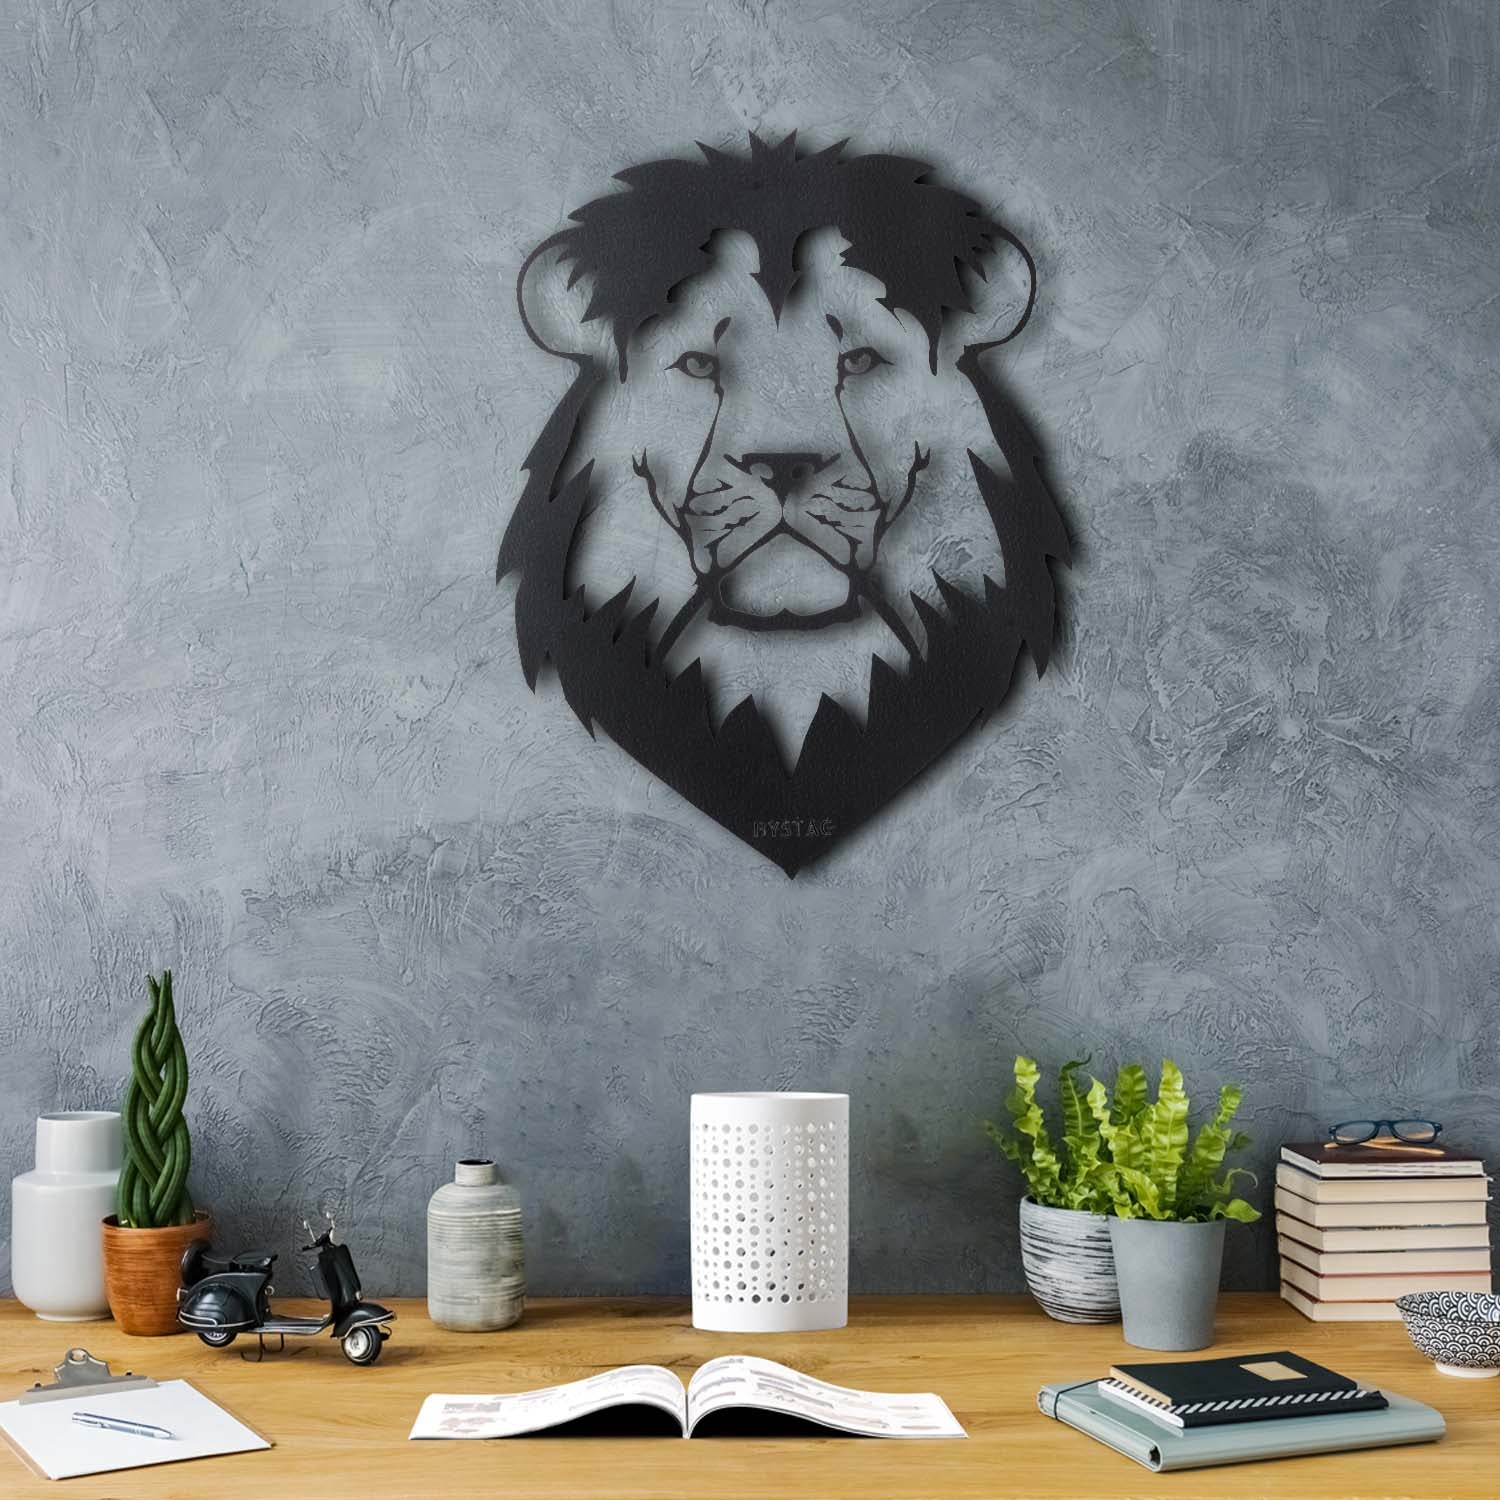 Bystag Metal Decorative Wall art lion-wall art-metal wall art-metal decor-housewarming gift- christmas gift-wall decor-wall hangings